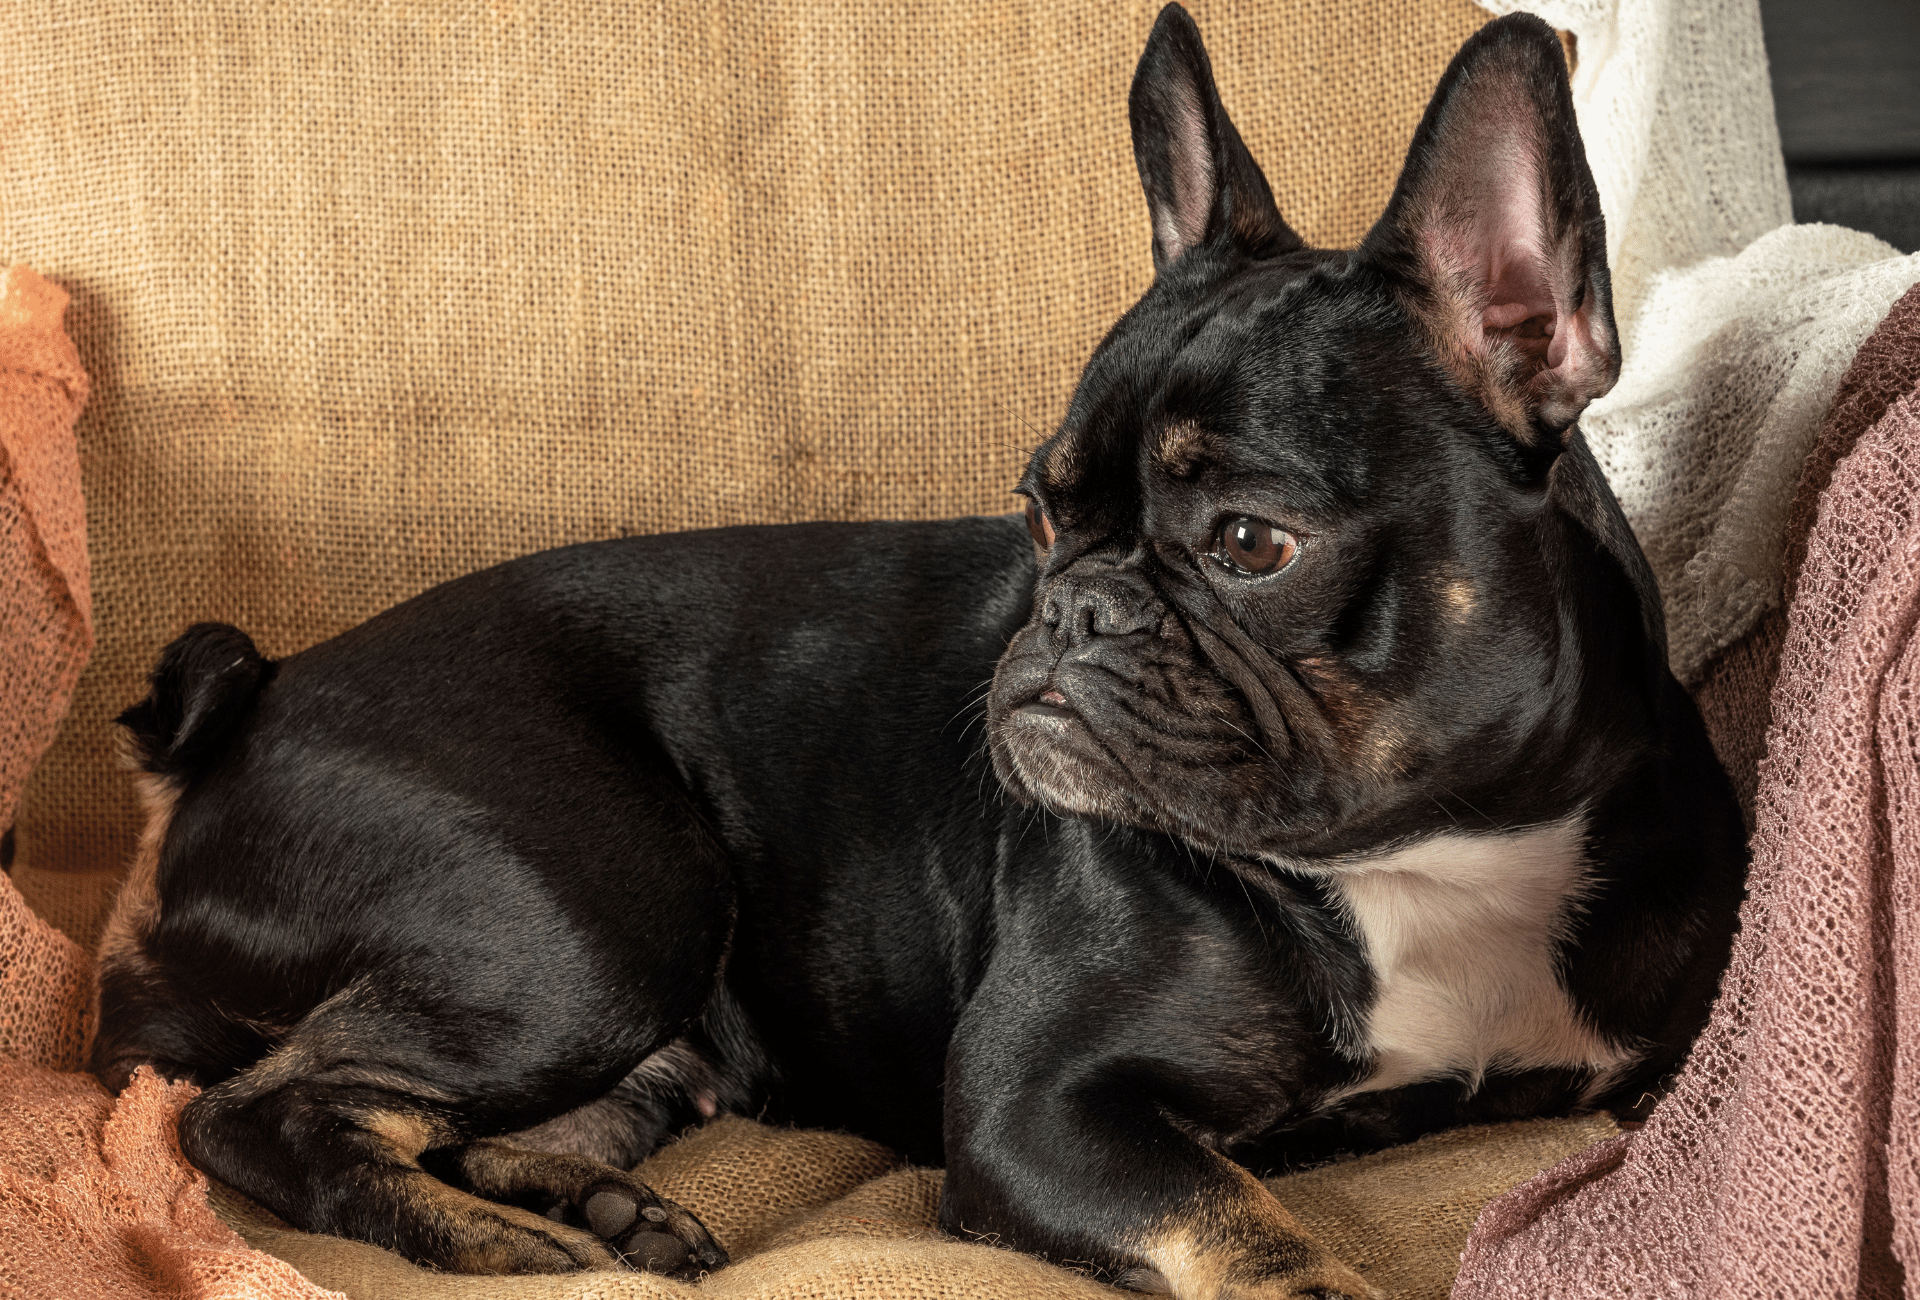 Black and tan French Bulldog on couch.